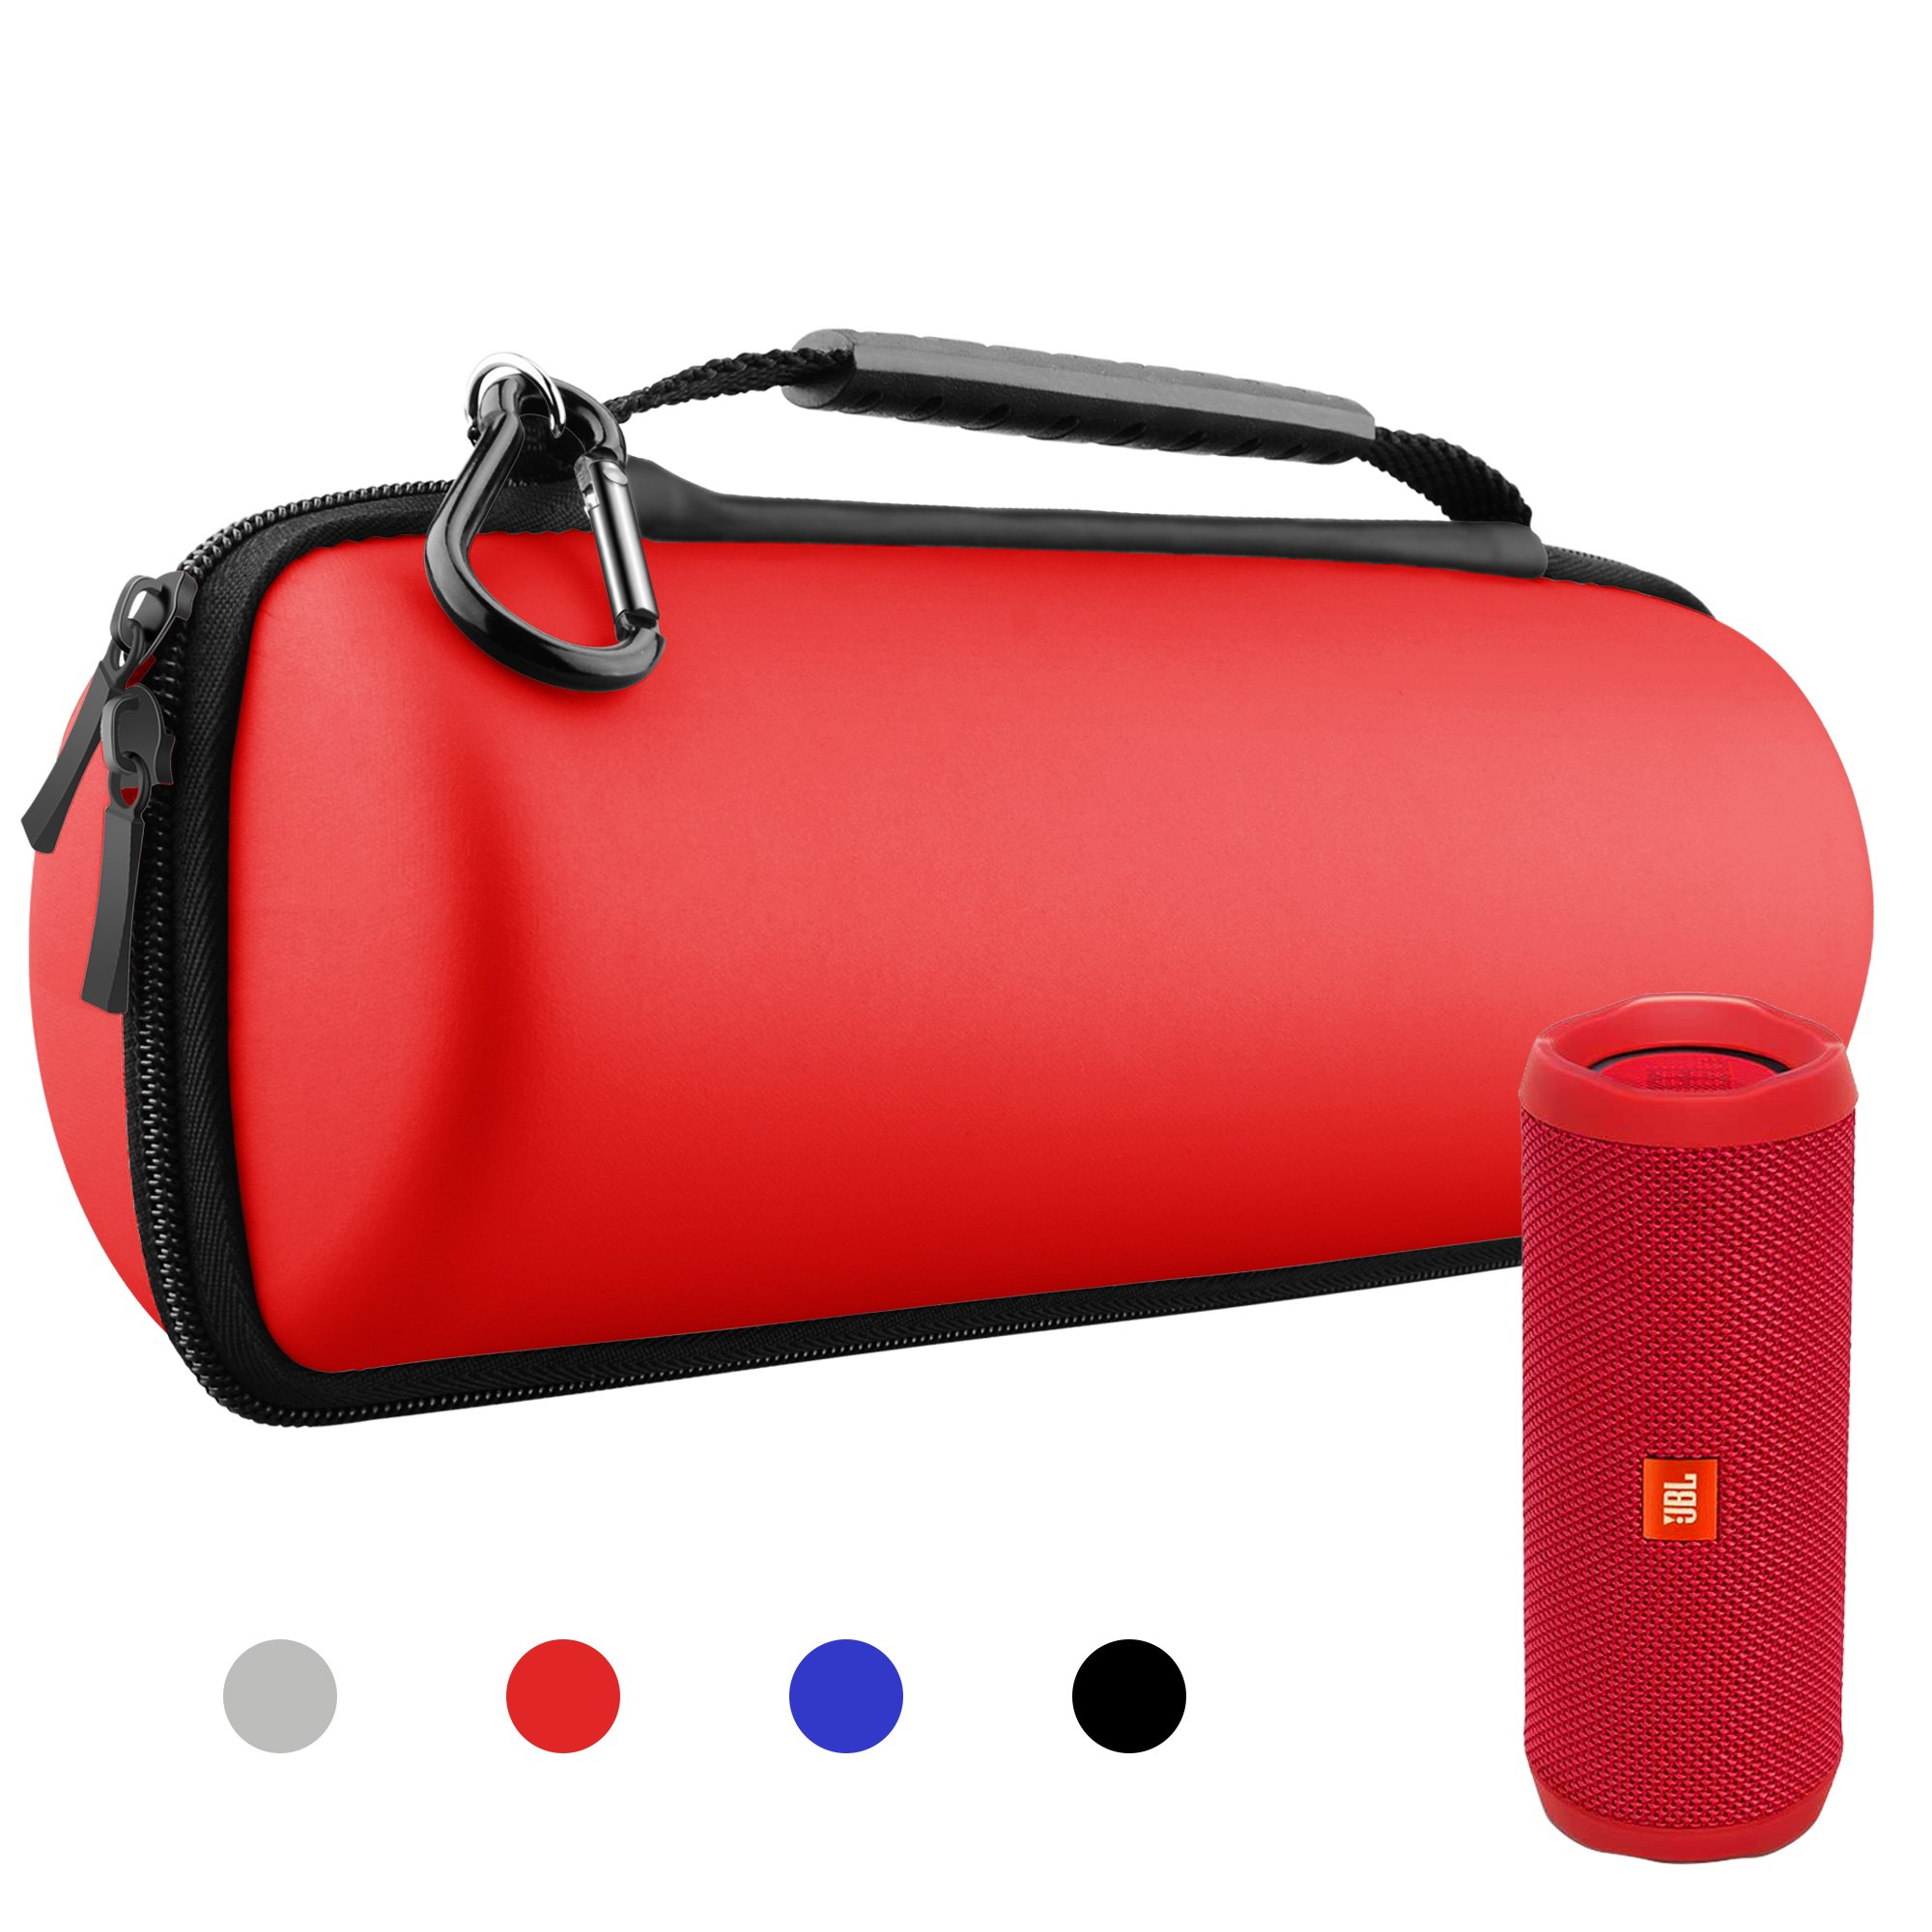 Hanlesi Case for JBL Flip 4 and Flip 3, Waterproof Carrying Accessories Case Wireless Bluetooth Speaker Travel Bag for Flip4/Flip3 Case Red